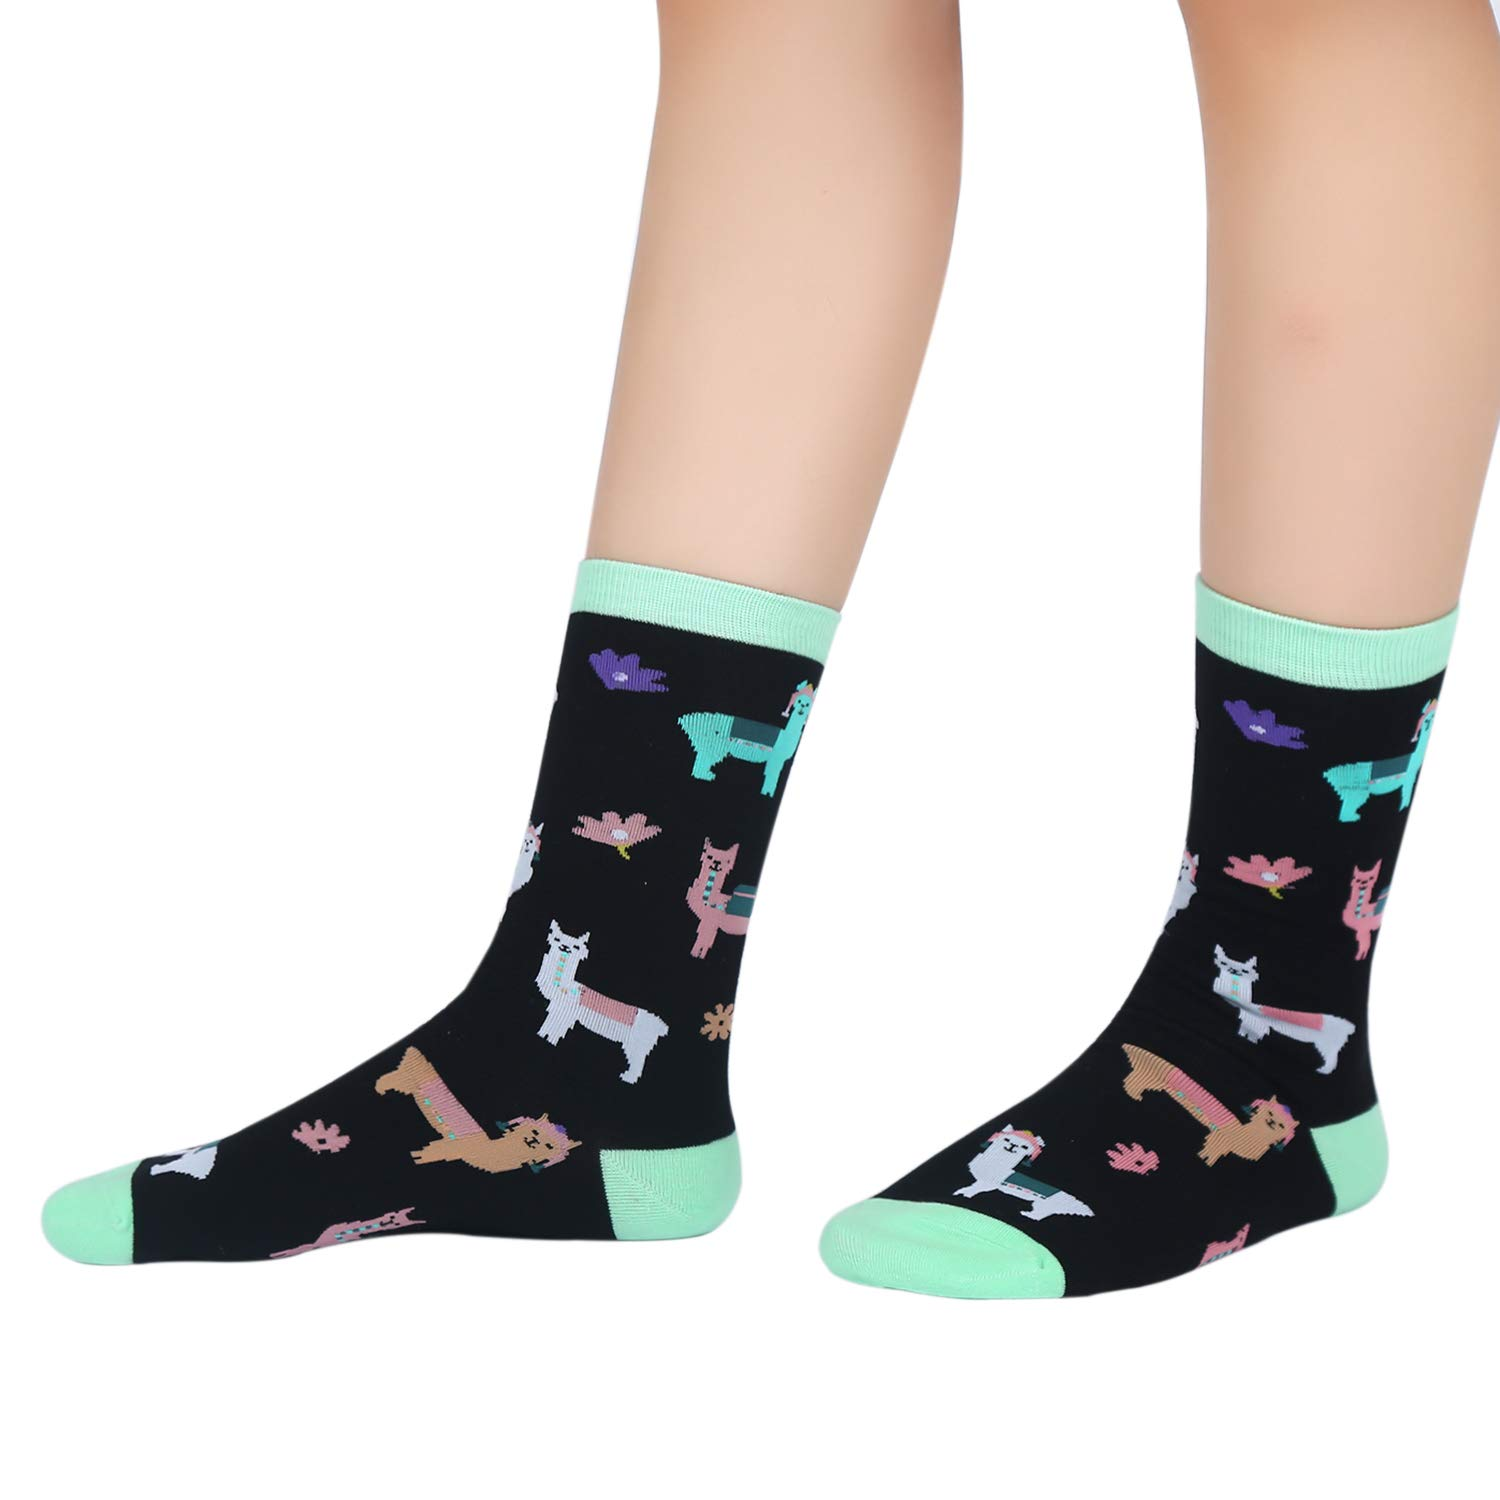 Womens Girls Novelty Llamas Crew Socks Flowers Crazy Funny Casual Animals Socks